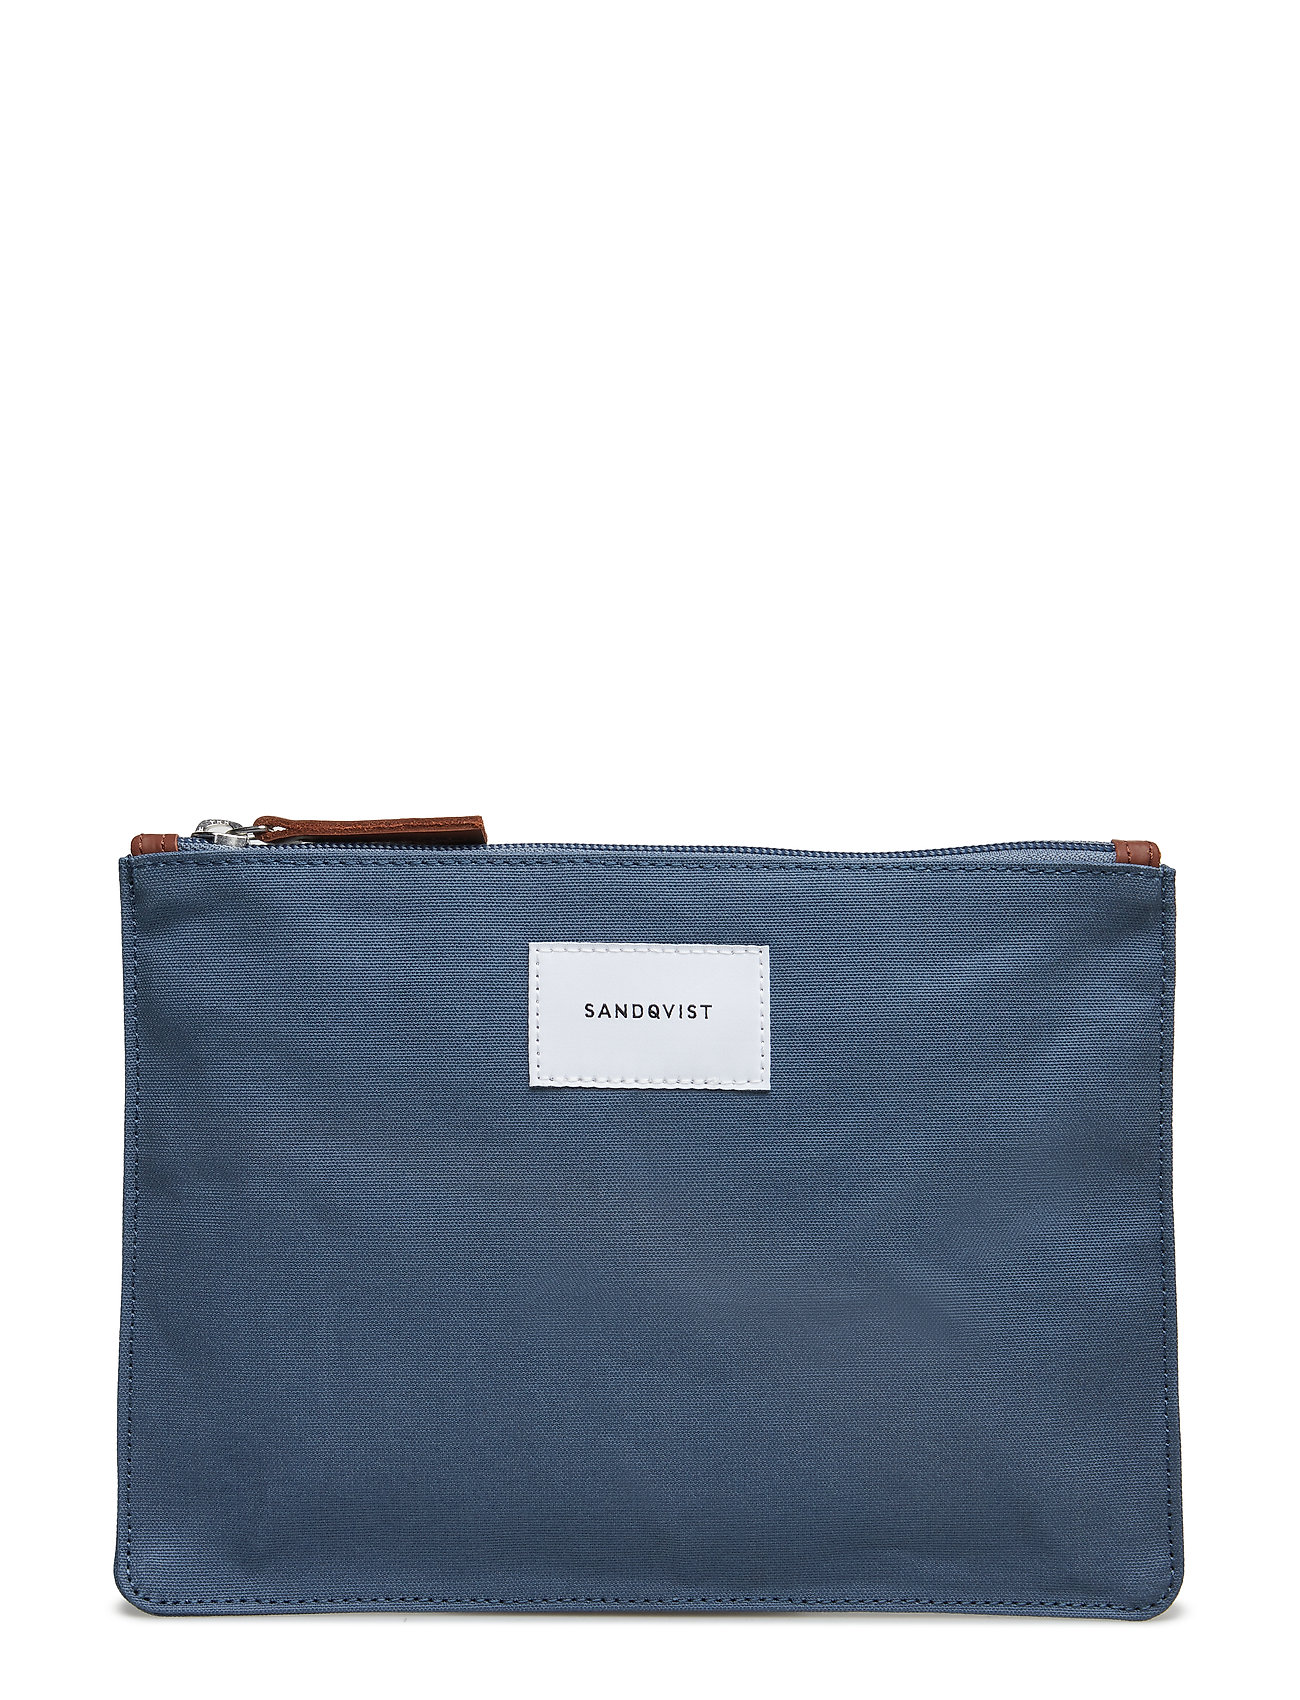 SANDQVIST TURE M - DUSTY BLUE WITH COGNAC BROWN LEATHER